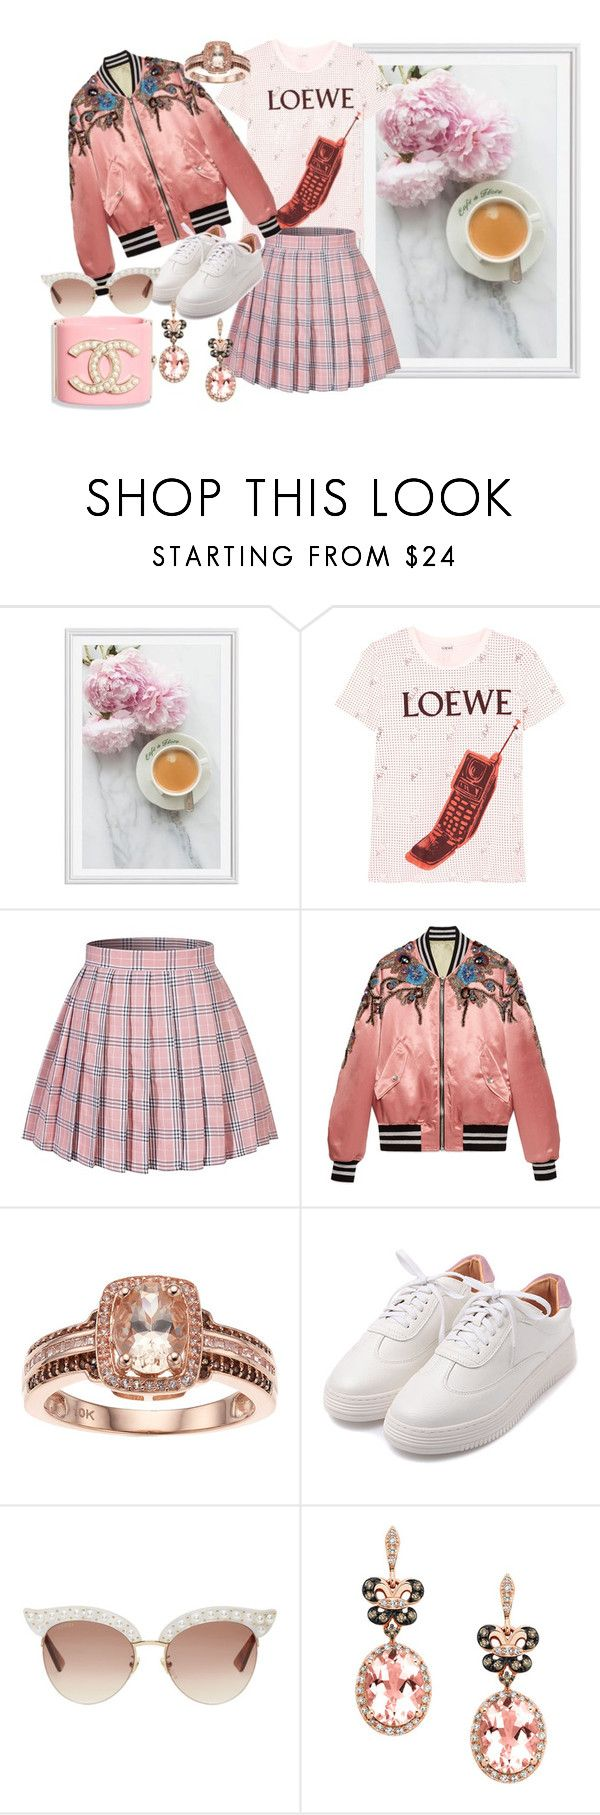 """""""Pink and White"""" by heidibartholdy on Polyvore featuring Pottery Barn, Loewe, Gucci, Effy Jewelry and Chanel"""